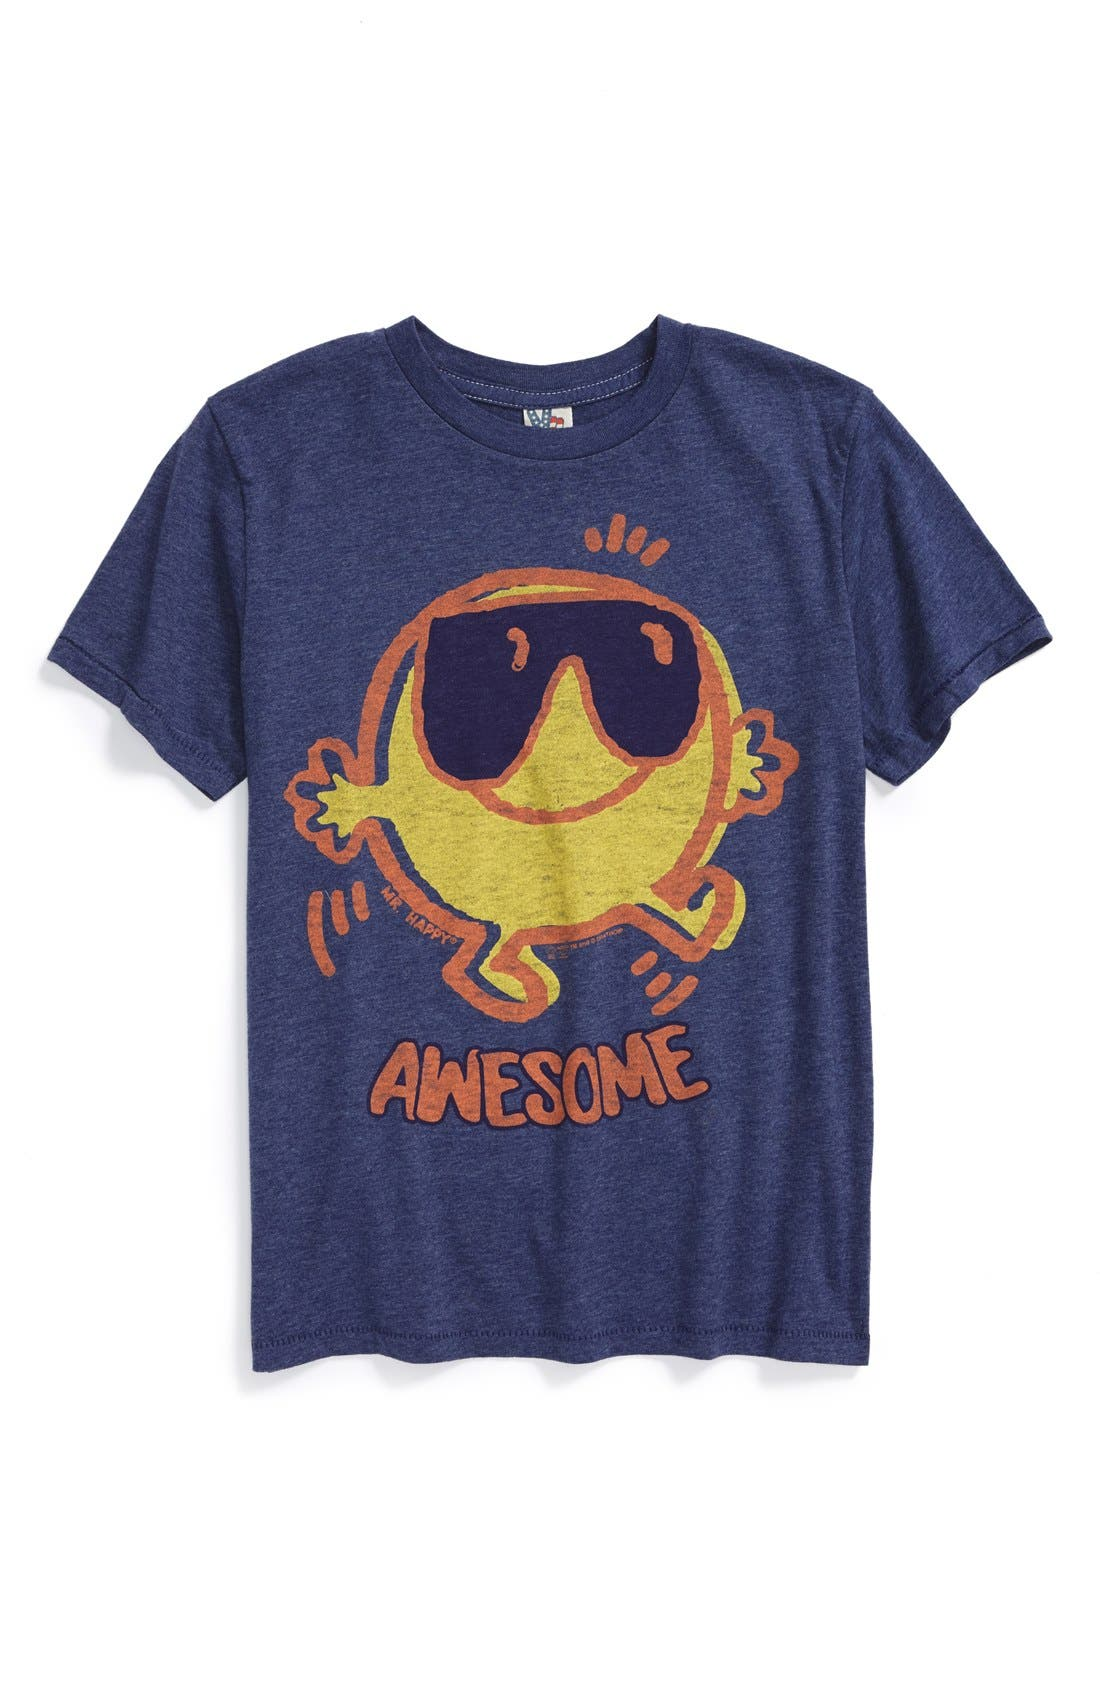 Main Image - Junk Food 'Awesome' T-Shirt (Little Boys)